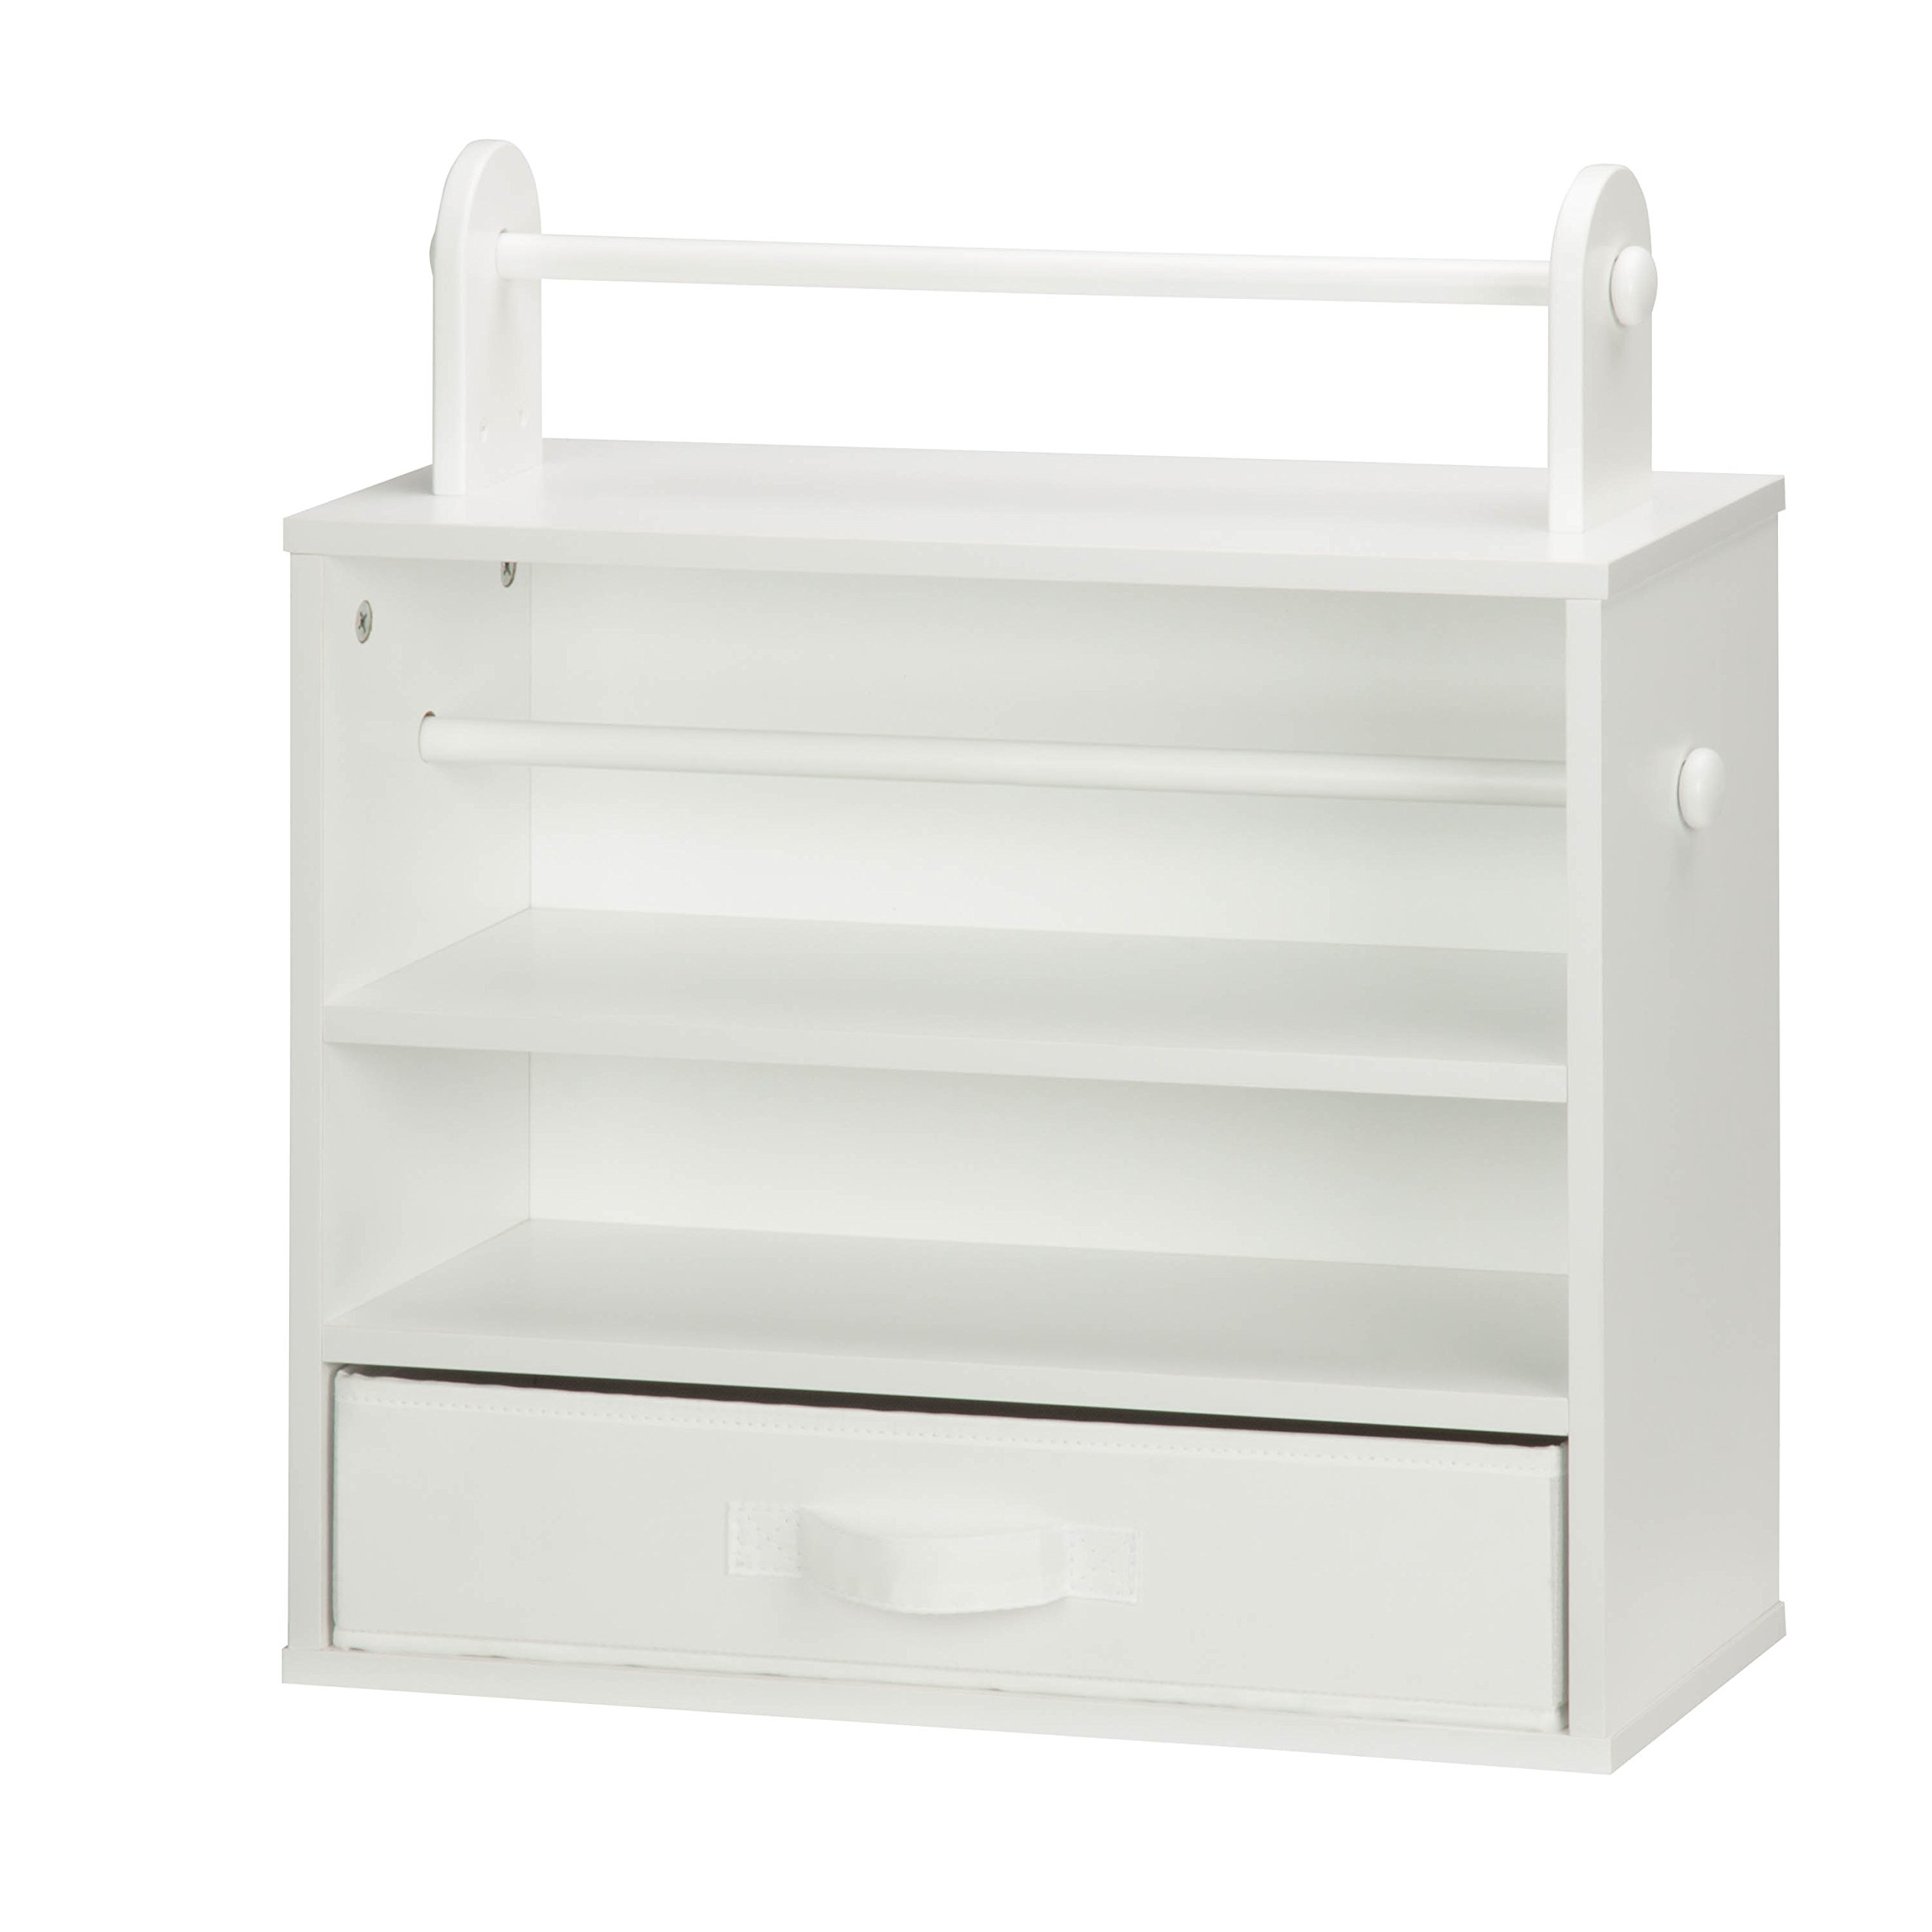 Honey-Can-Do CRT-06344 Tabletop Craft Storage Chest with Fabric Drawer, White by Honey-Can-Do